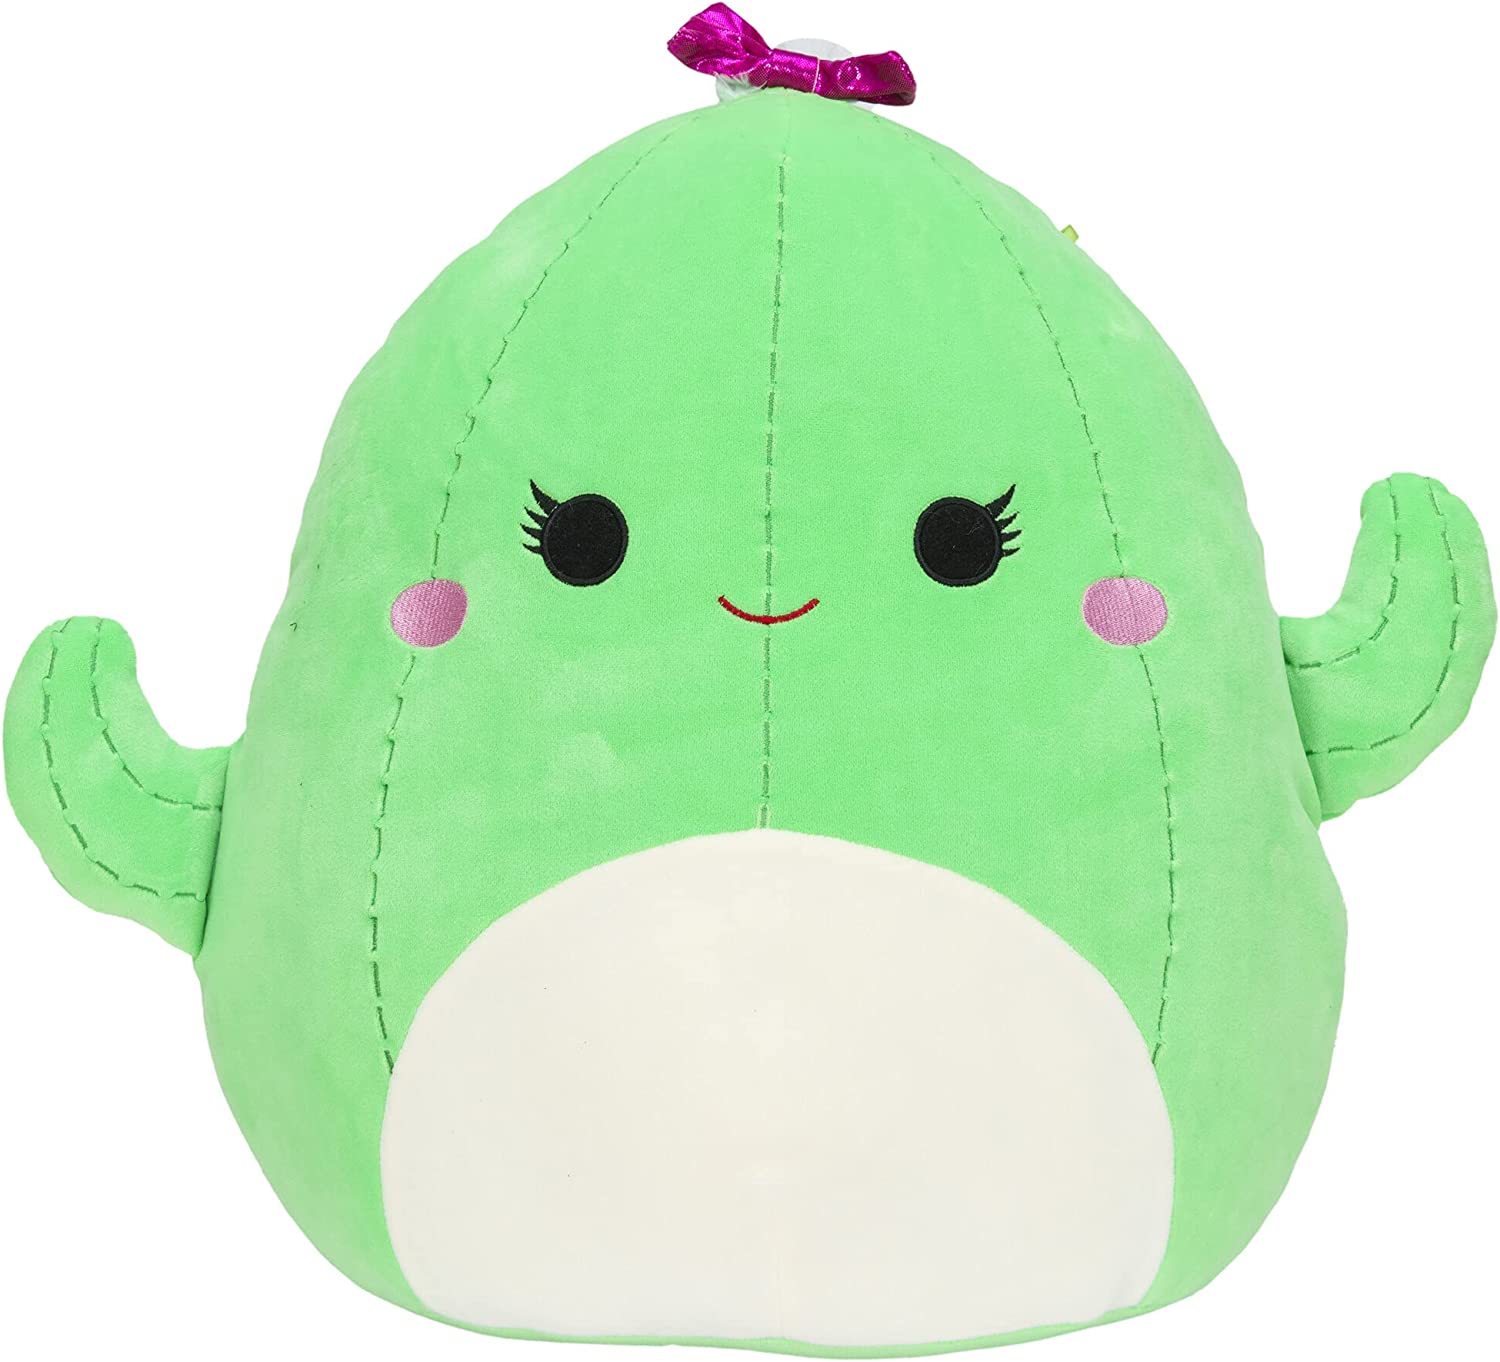 Squishmallow 16-Inch Cactus - Add Maritza to Your Squad, Ultrasoft Stuffed Animal Large Plush Toy, Official Kellytoy Plush